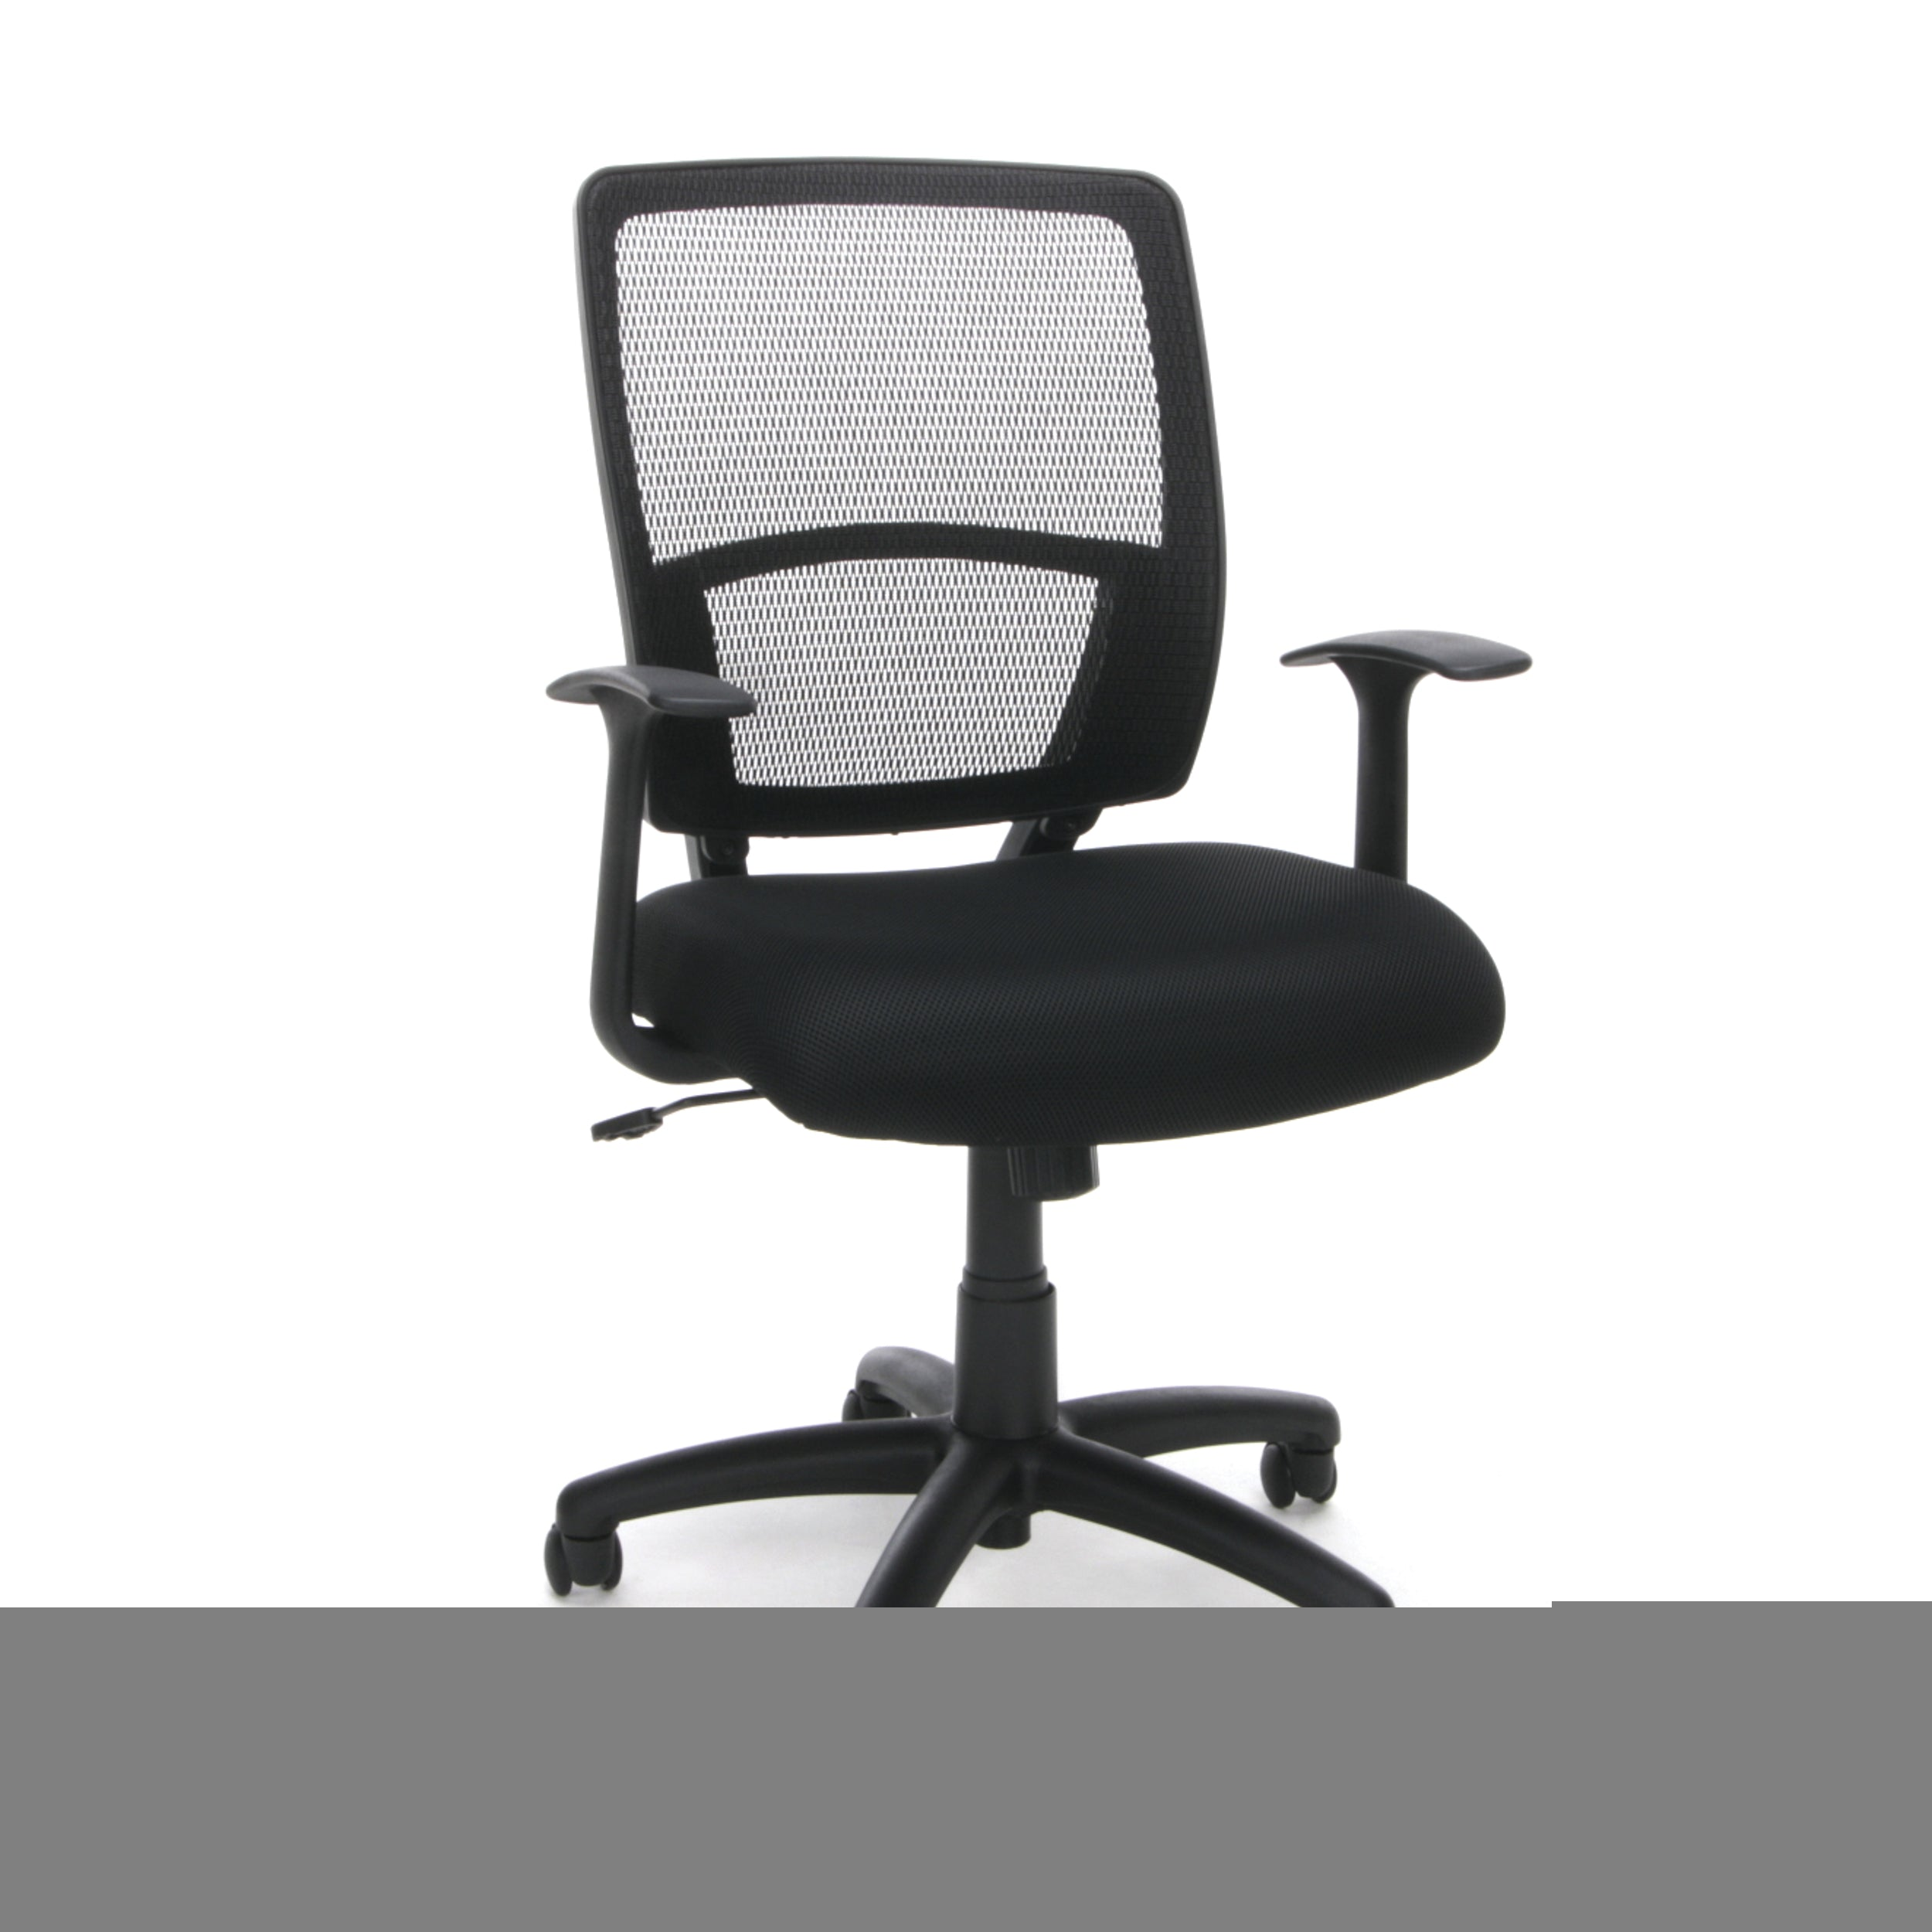 Model ESS-102 Essentials by OFM Mesh Back Task Office Chair